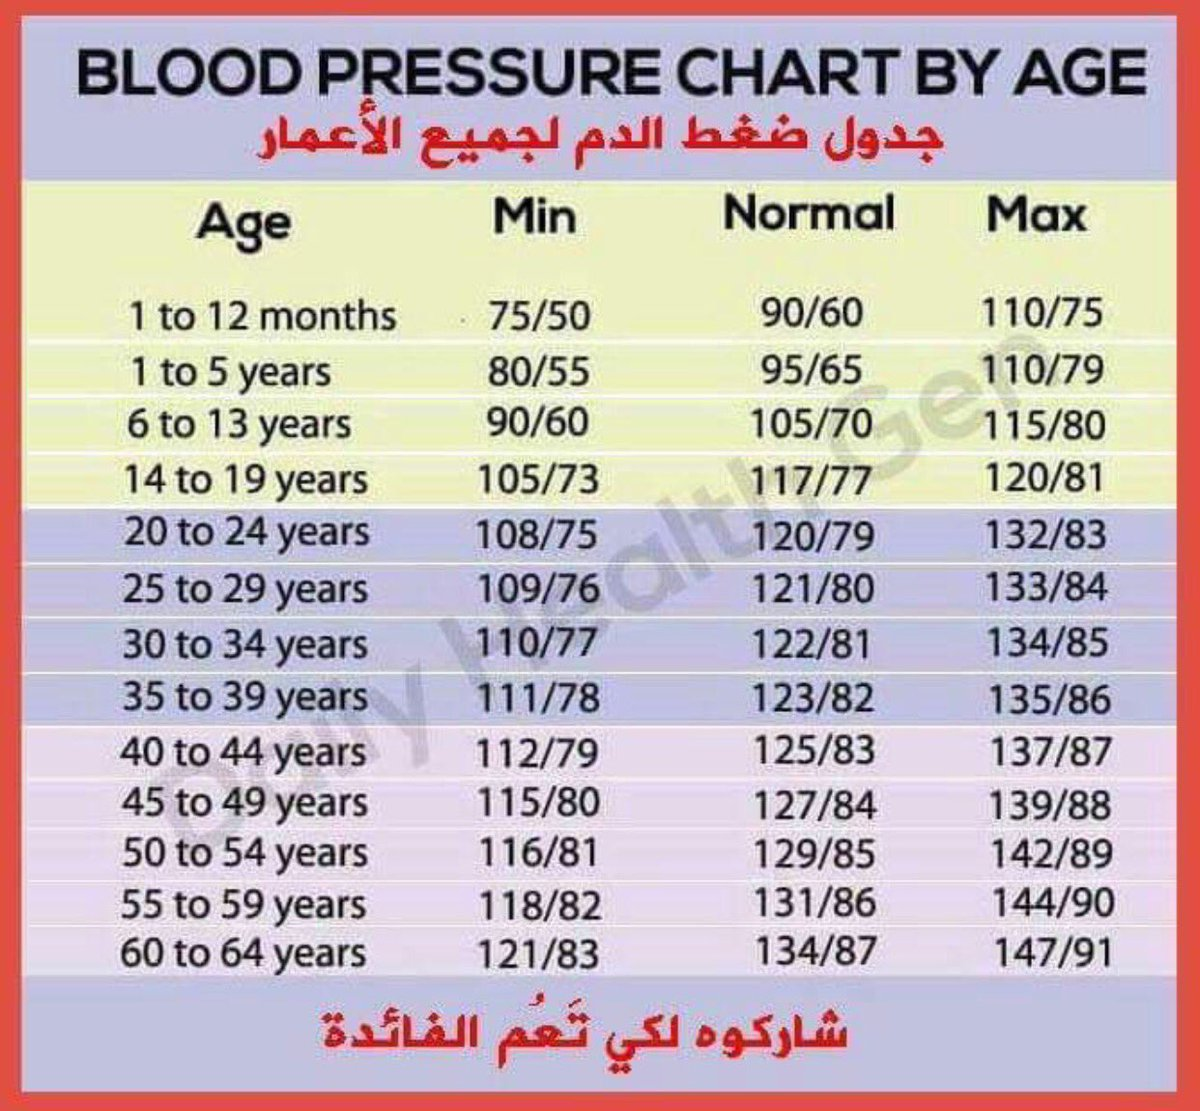 on twitter hypotension signs symptoms bloodpressure chart by age picitterrchulazuf4 nvjuhfo Images